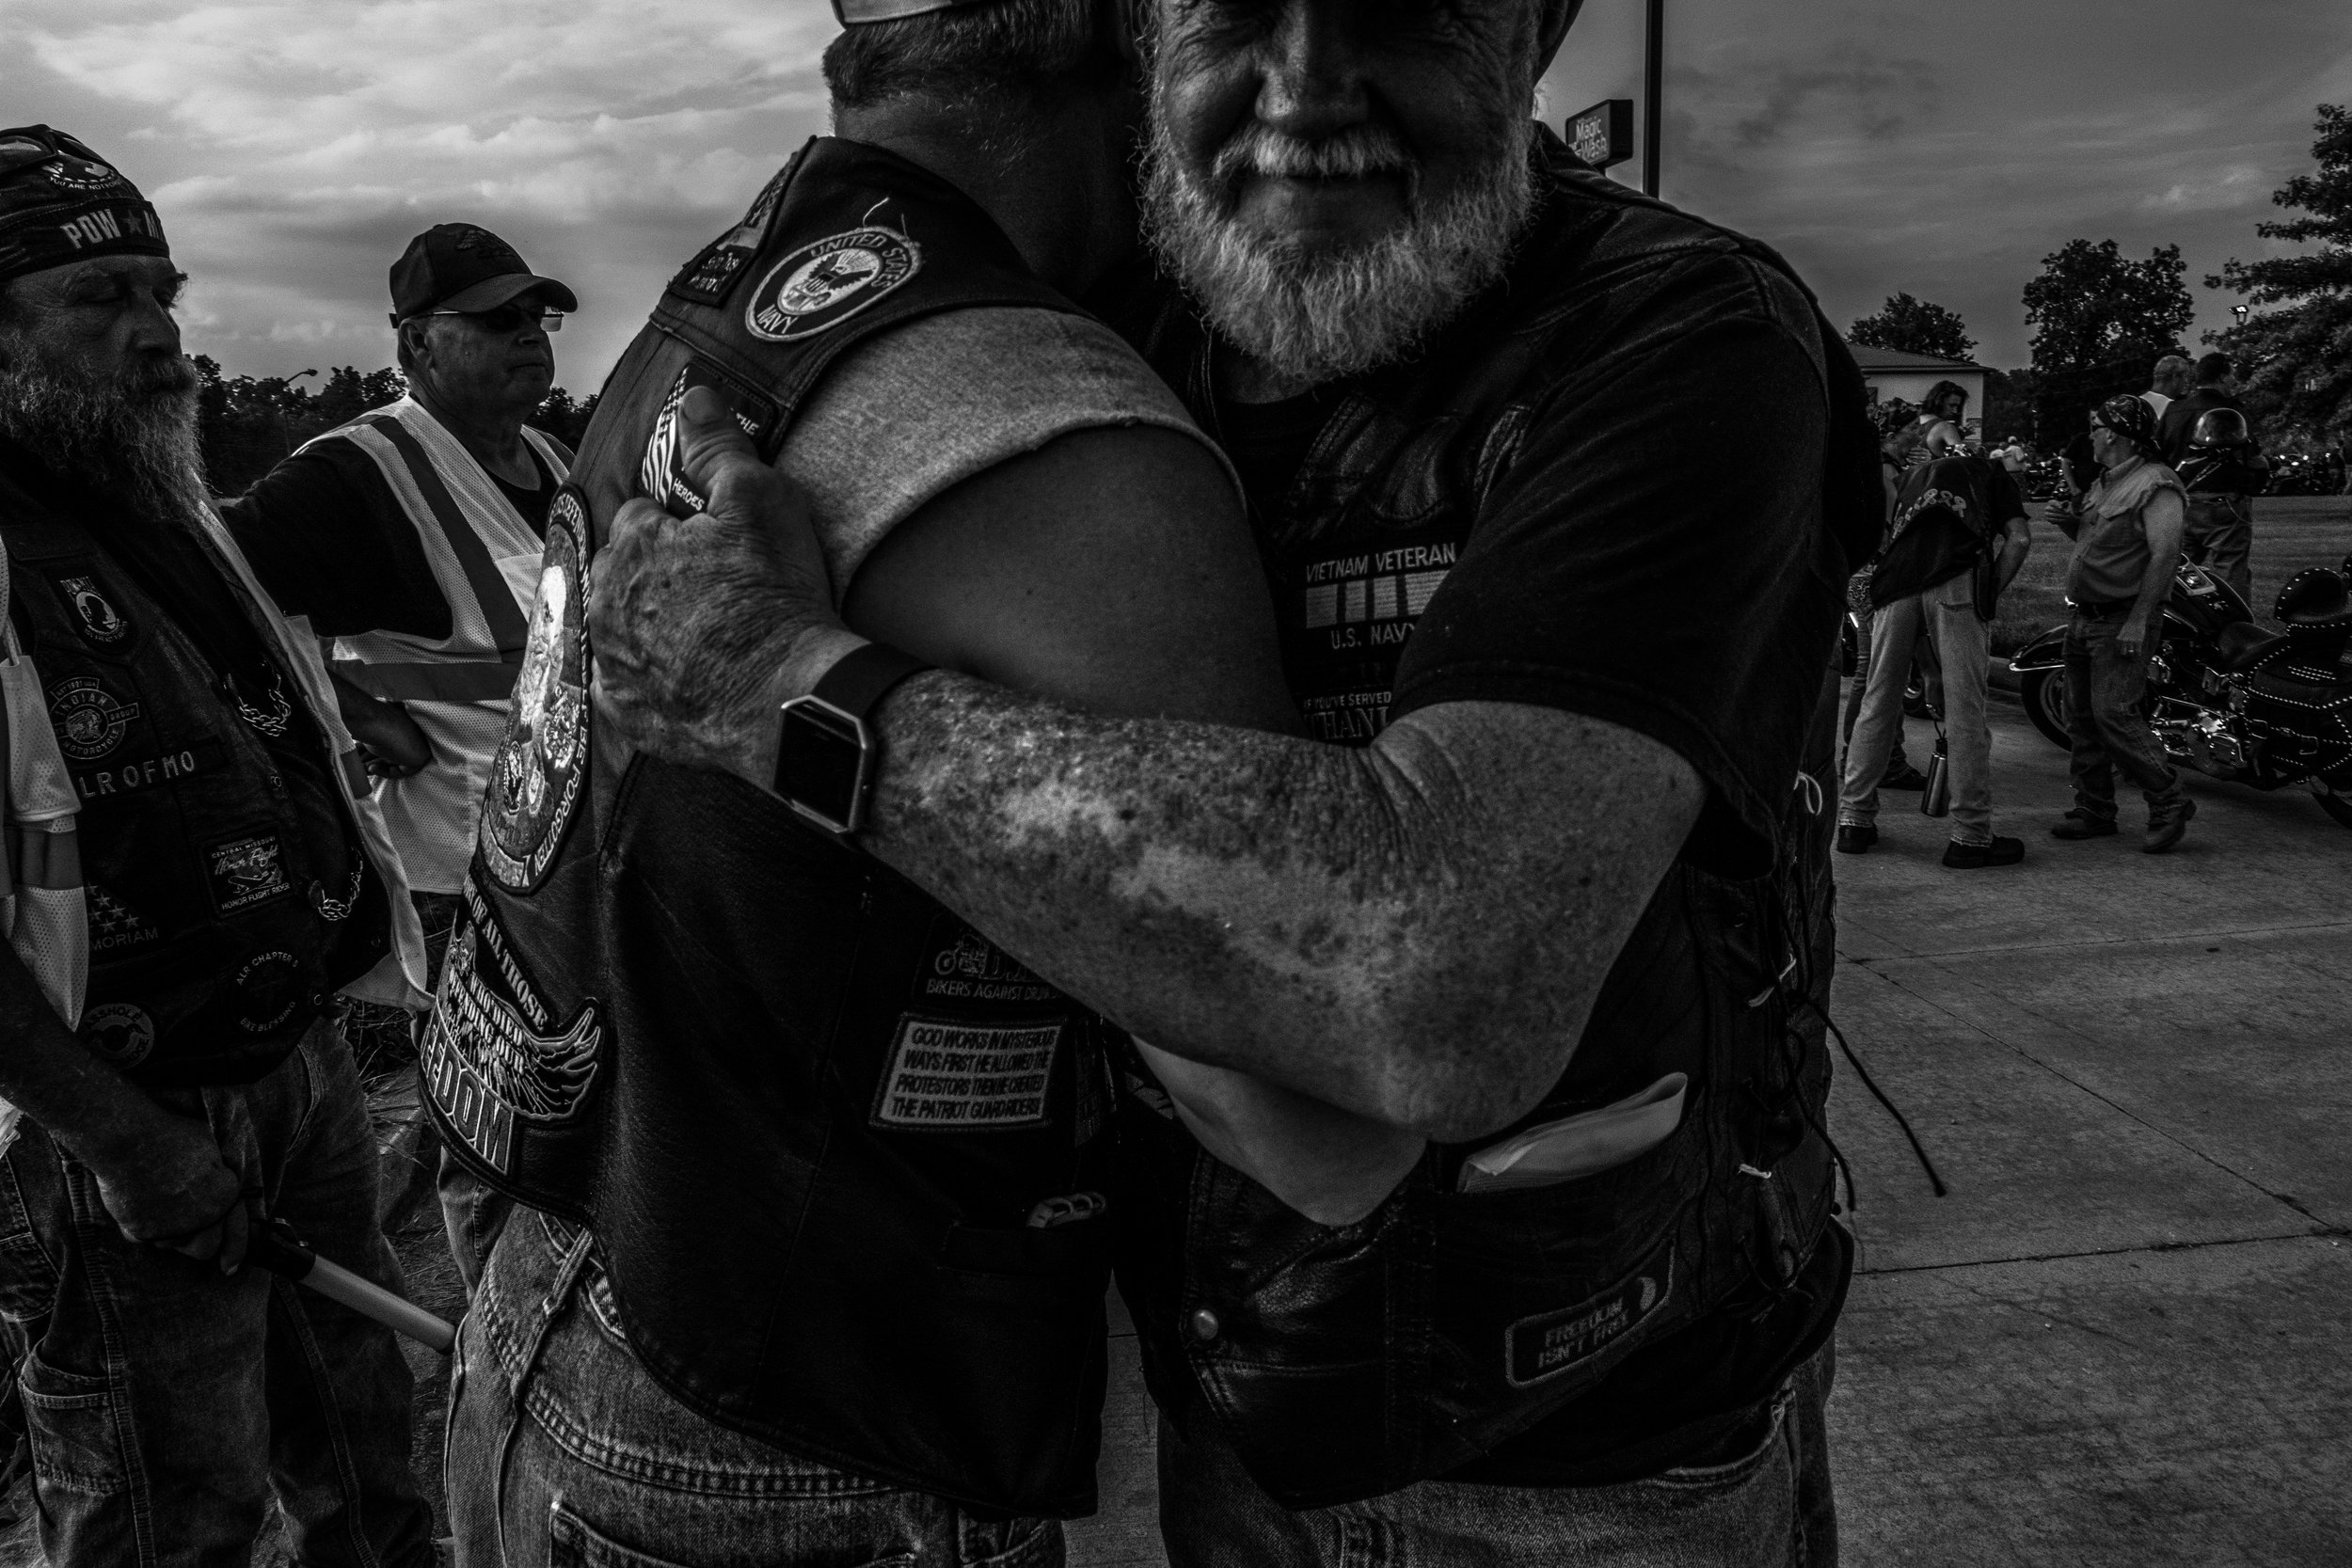 Patriot Guard Riders welcome each other to Honor Flight 58 in Kingdom City, Missouri on Tuesday, Jun. 18, 2019. This Honor Flight ride featured 256 motorcycles for the 26 mile escort to the Marriott Hotel in Columbia, Missouri.